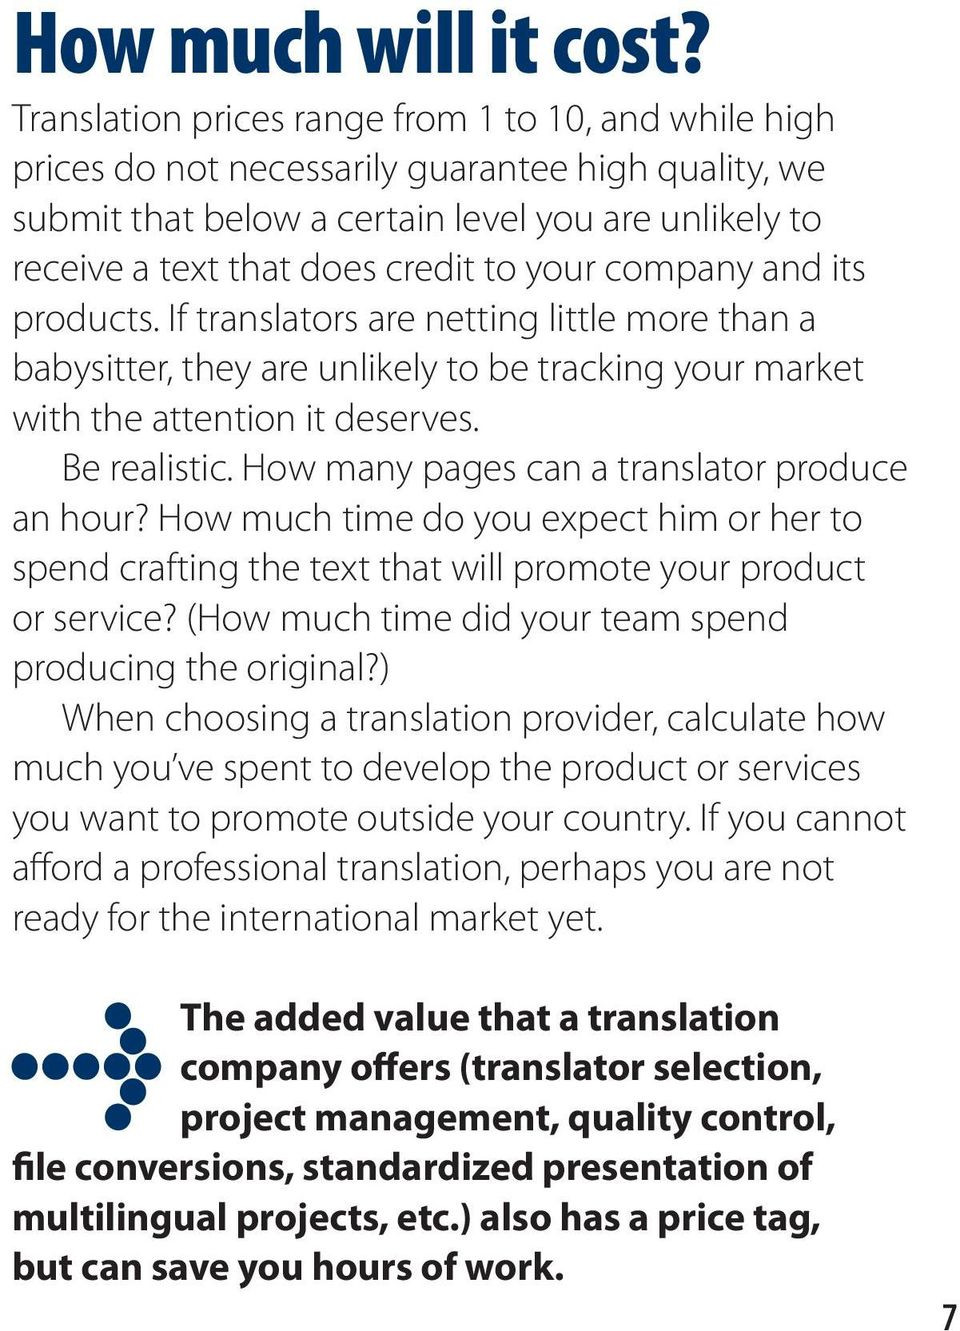 your company and its products. If translators are netting little more than a babysitter, they are unlikely to be tracking your market with the attention it deserves. Be realistic.